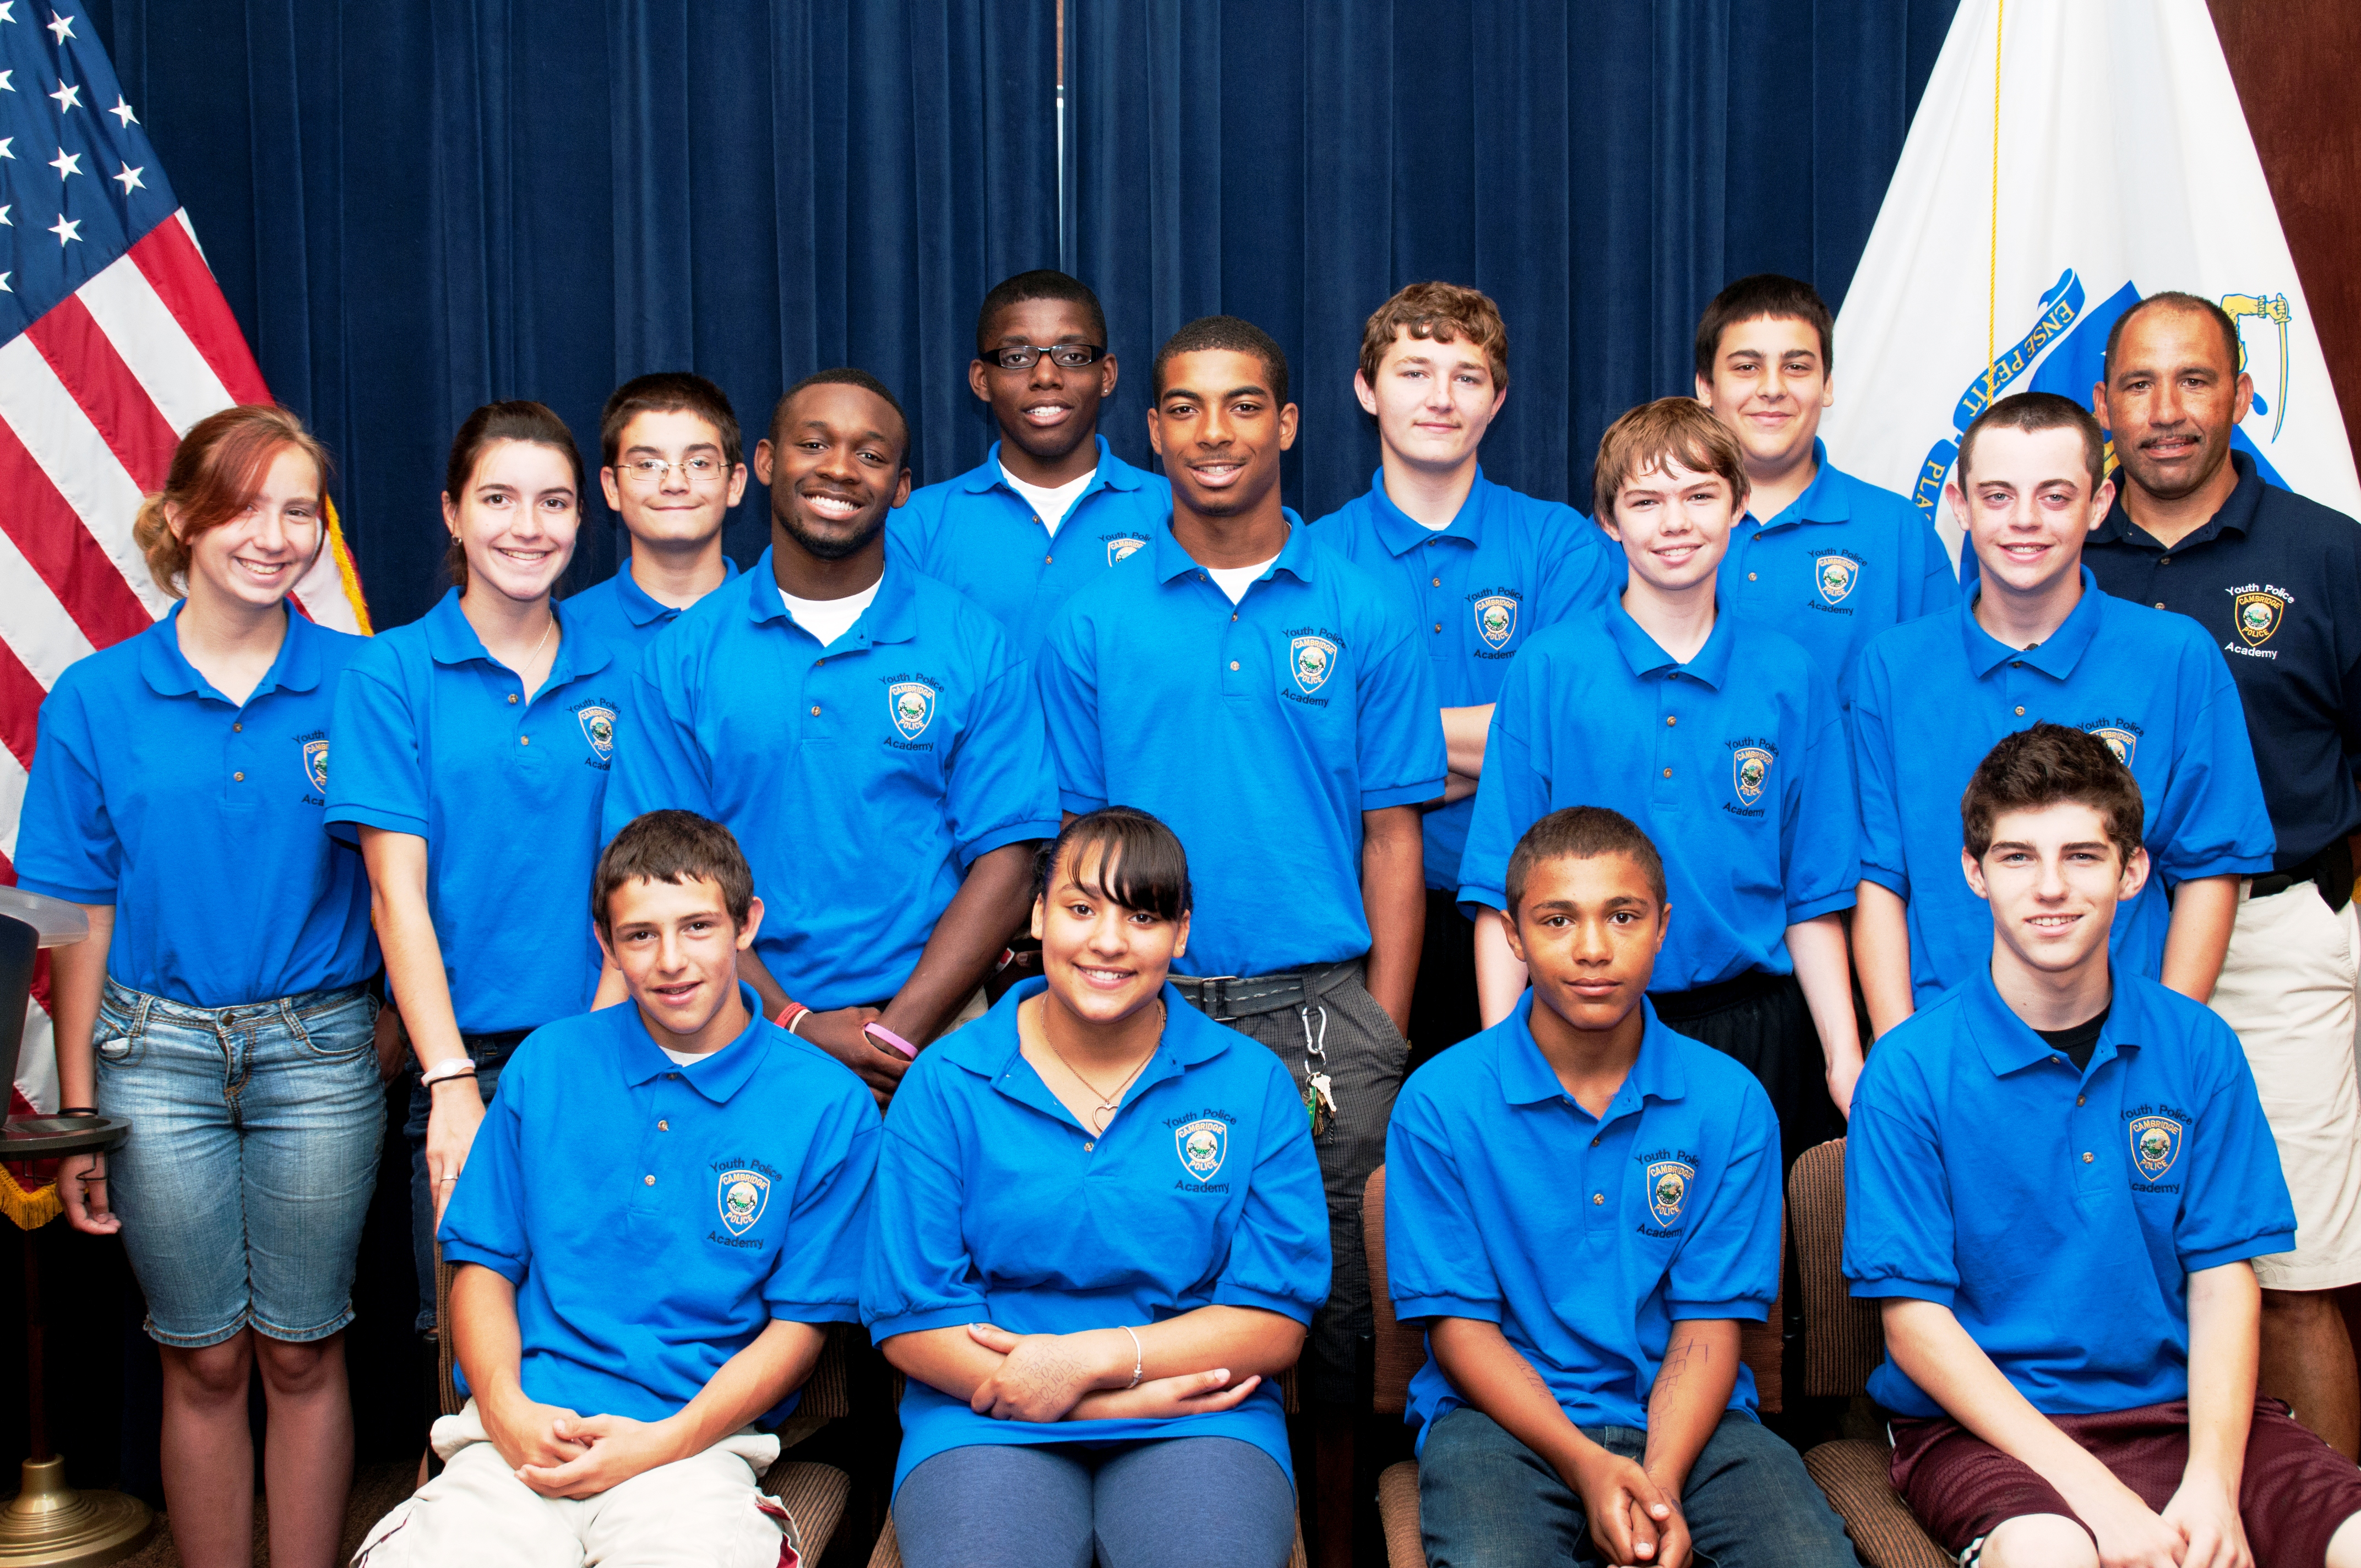 Youth Volunteer and Employment Programming - Police